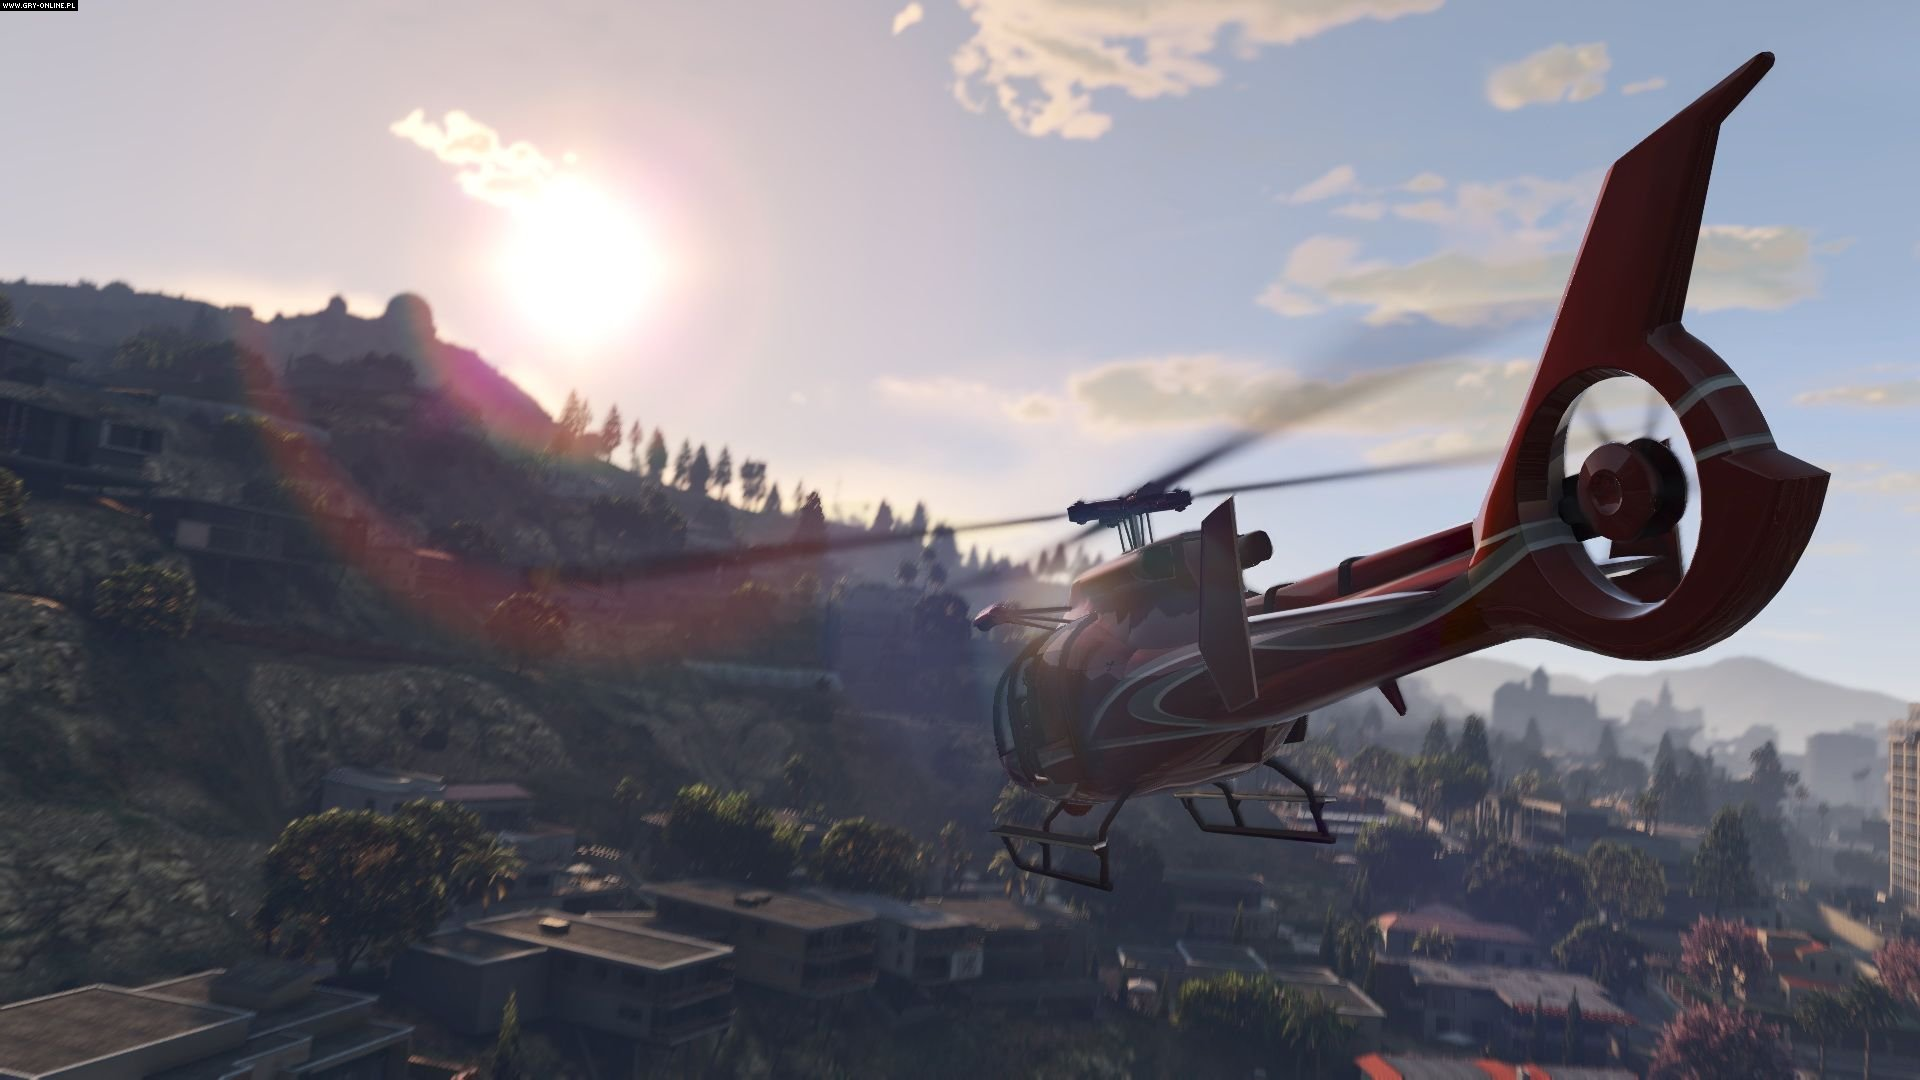 Grand Theft Auto V PC, PS4, XONE Gry Screen 135/396, Rockstar Games